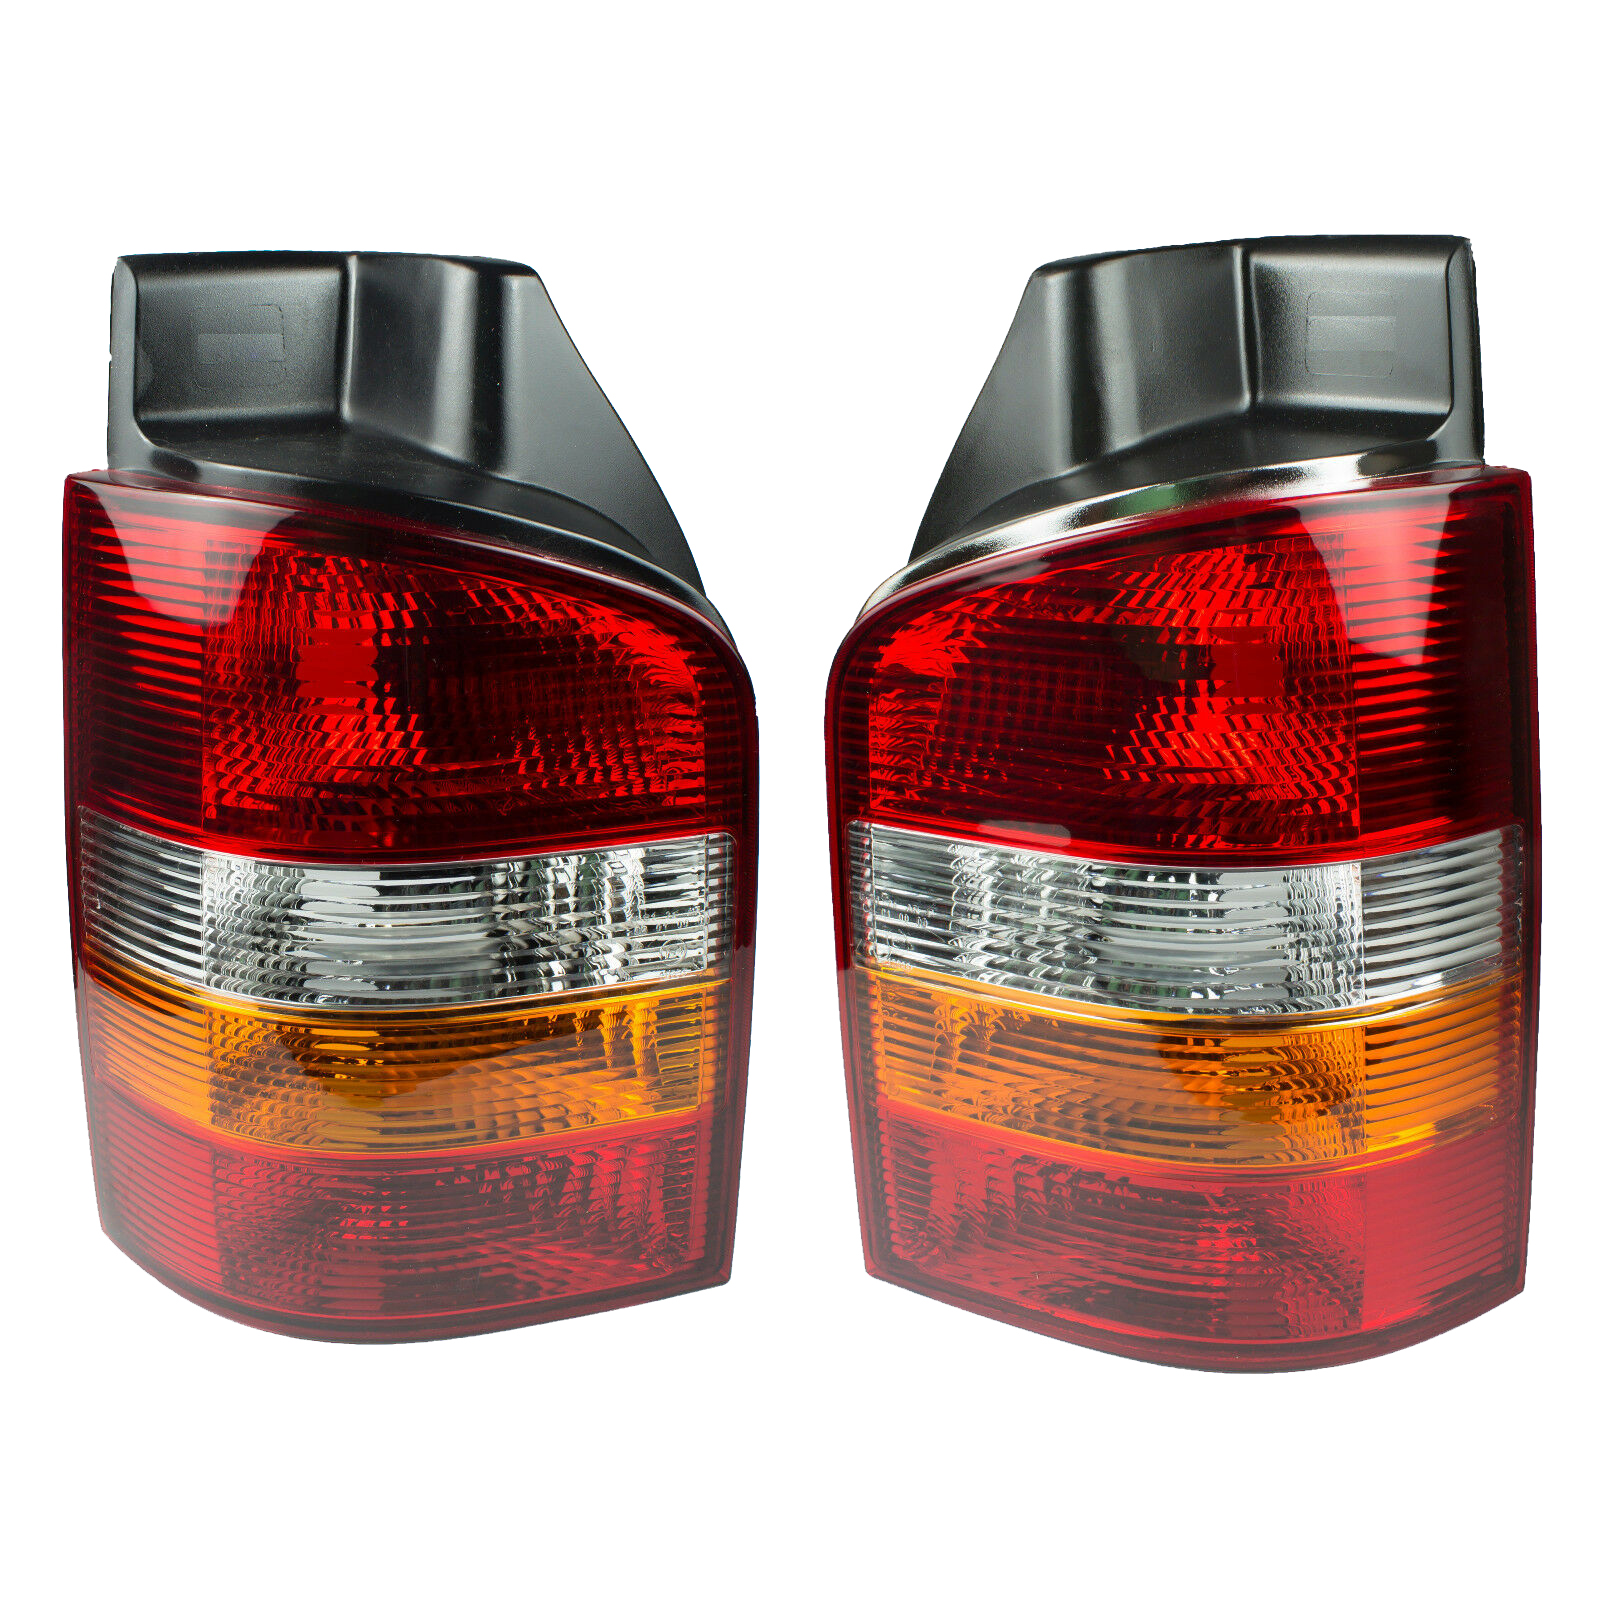 1 Pair Taillight For Volkswagen <font><b>VW</b></font> Transporter <font><b>VW</b></font> <font><b>T5</b></font> Eurovan Caravelle Tail Lights Rear Brake Signal Fog Light Lamp 2003-2009 image